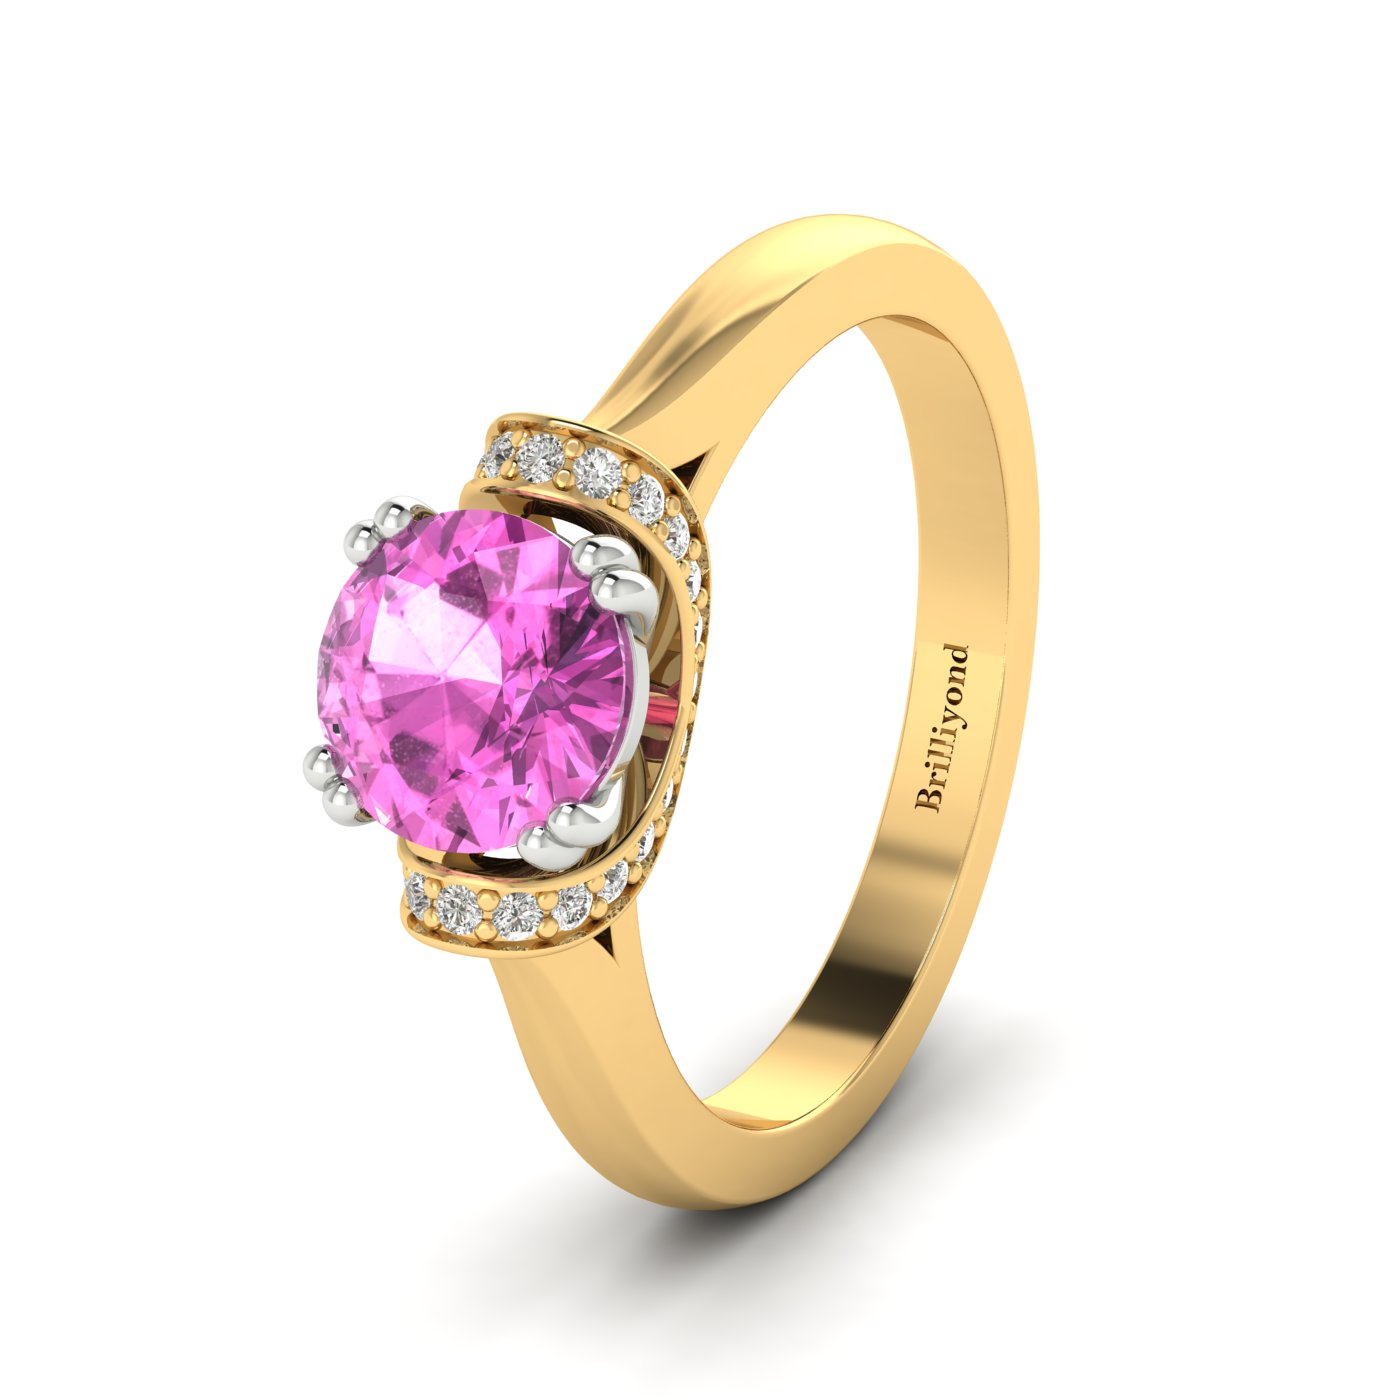 Pink Ceylon sapphire with GIA certified diamond accents on two tone gold band